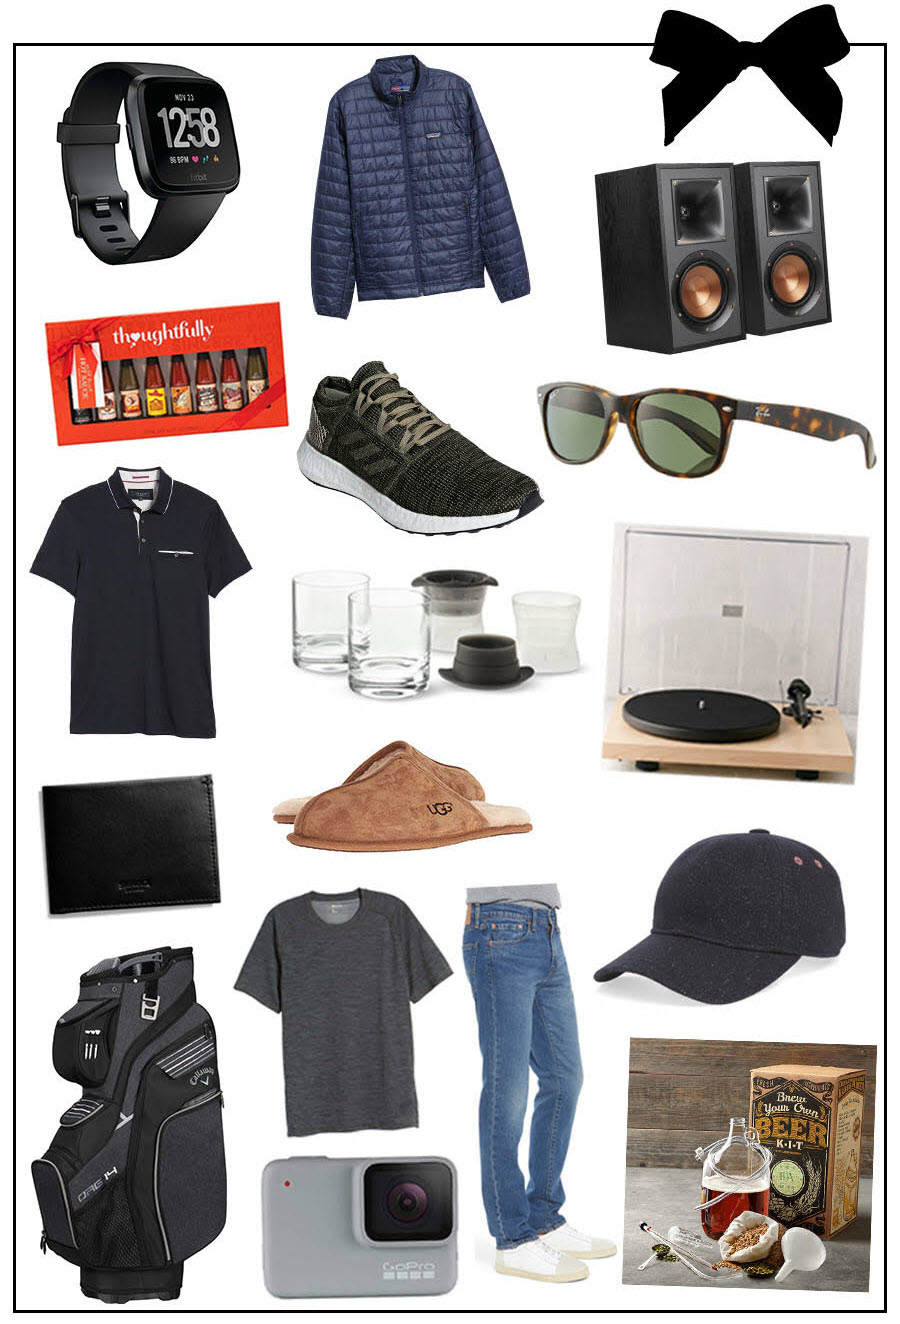 Best Gifts for Men 2018 Gift Guide | Luci\'s Morsels